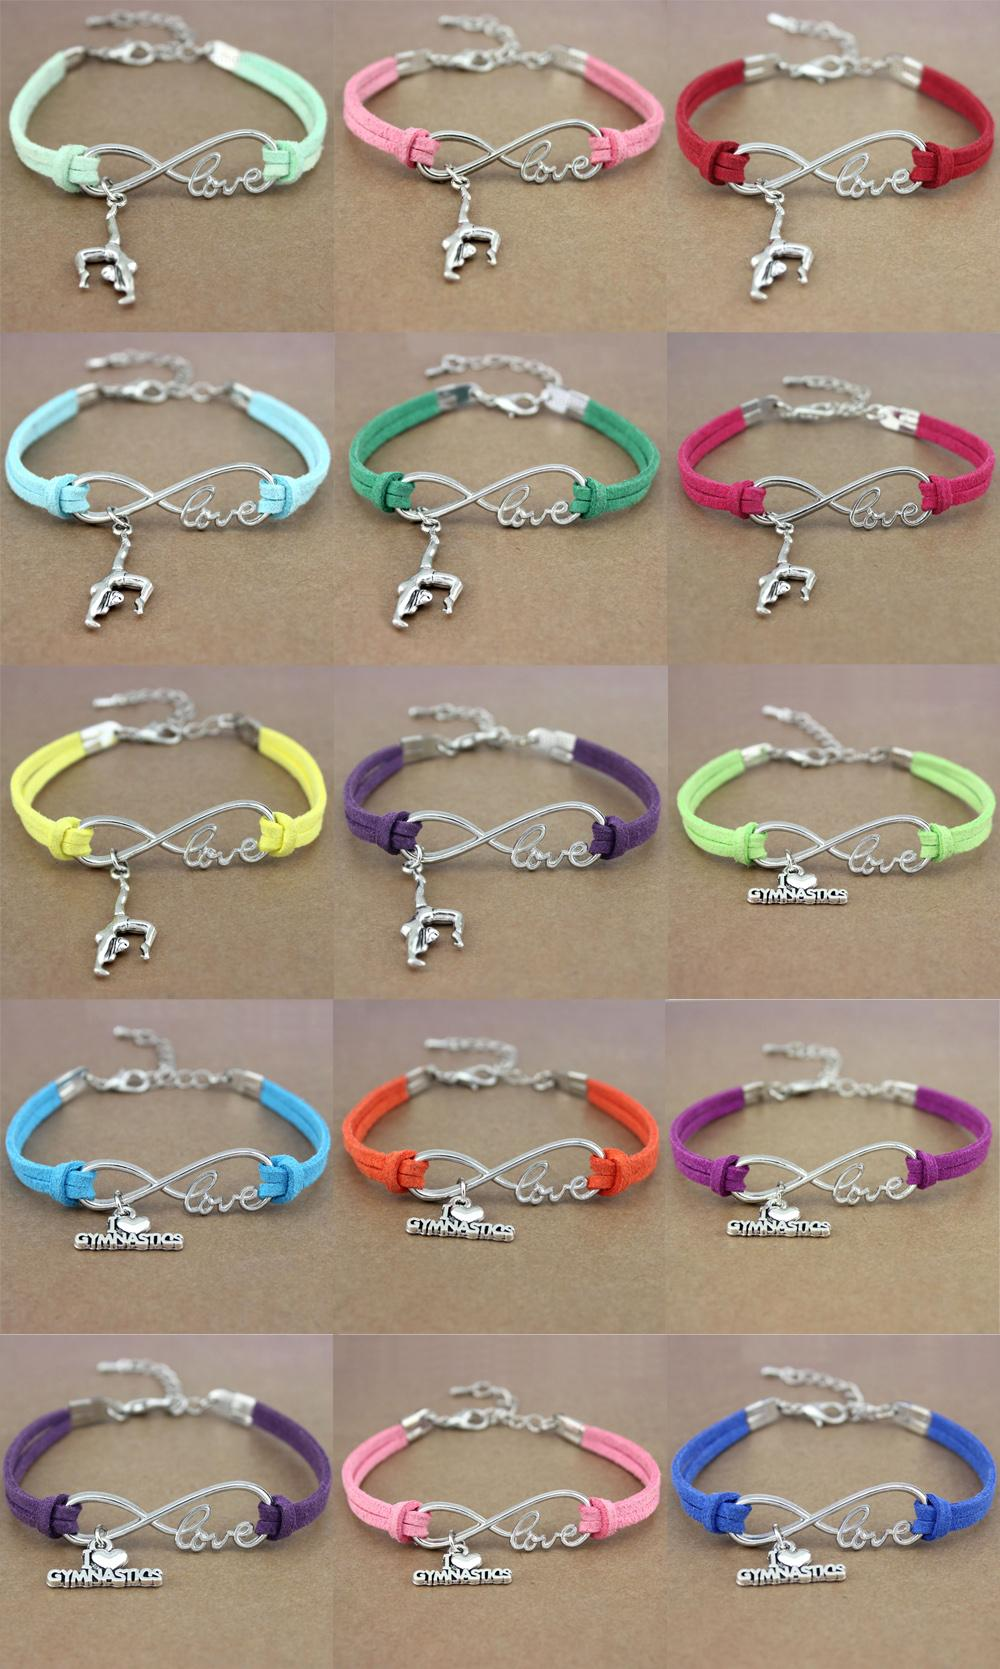 Ice Skate Shoe Skating Sports Gymnastics Infinity Love Charm Bracelets Women Men Girl Boy Unisex Jewelry to Choose